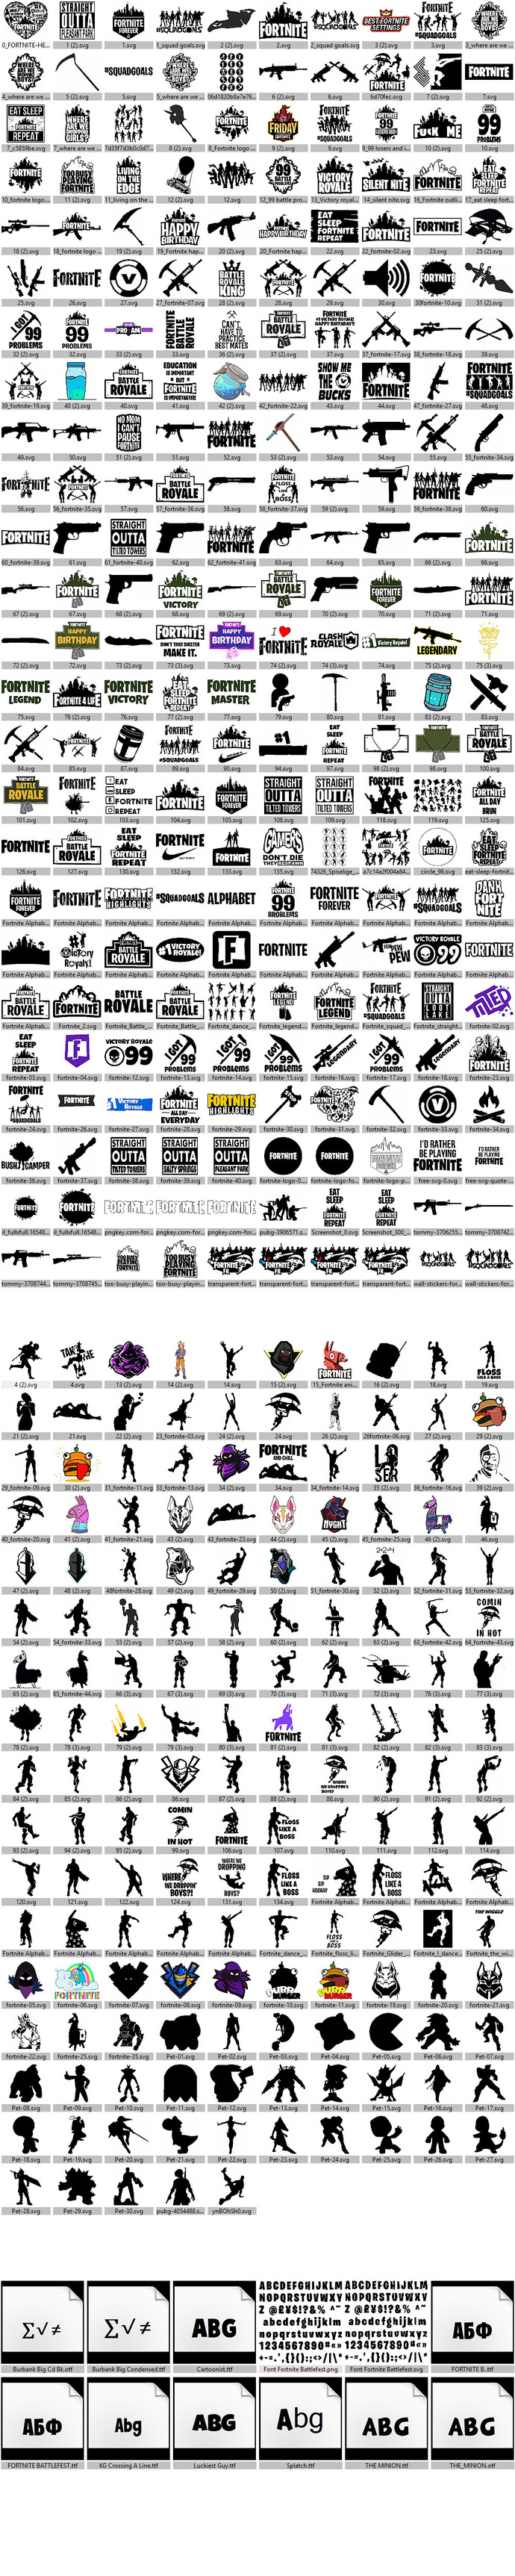 Fortnite Clipart, Fonts, Logos, Silhouettes, Vector